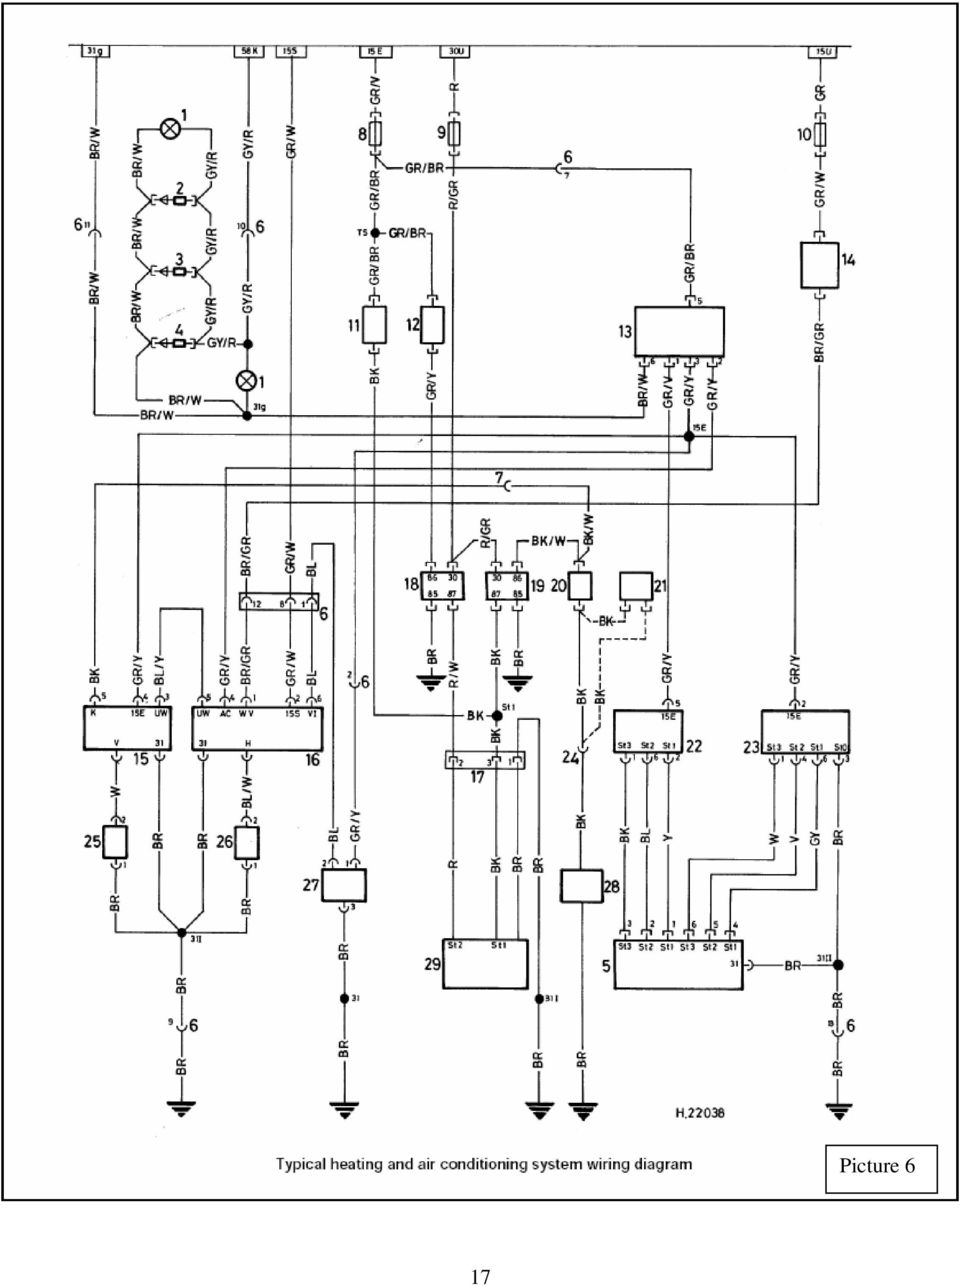 Colour Codes Diagrams Index Pdf 1992 Subaru Legacy Heater Wiring Schematic 18 Key To Air Conditioning System Diagram Picture 6 1 Light For Controls 2 Diode Iii 3 Ii 4 I 5